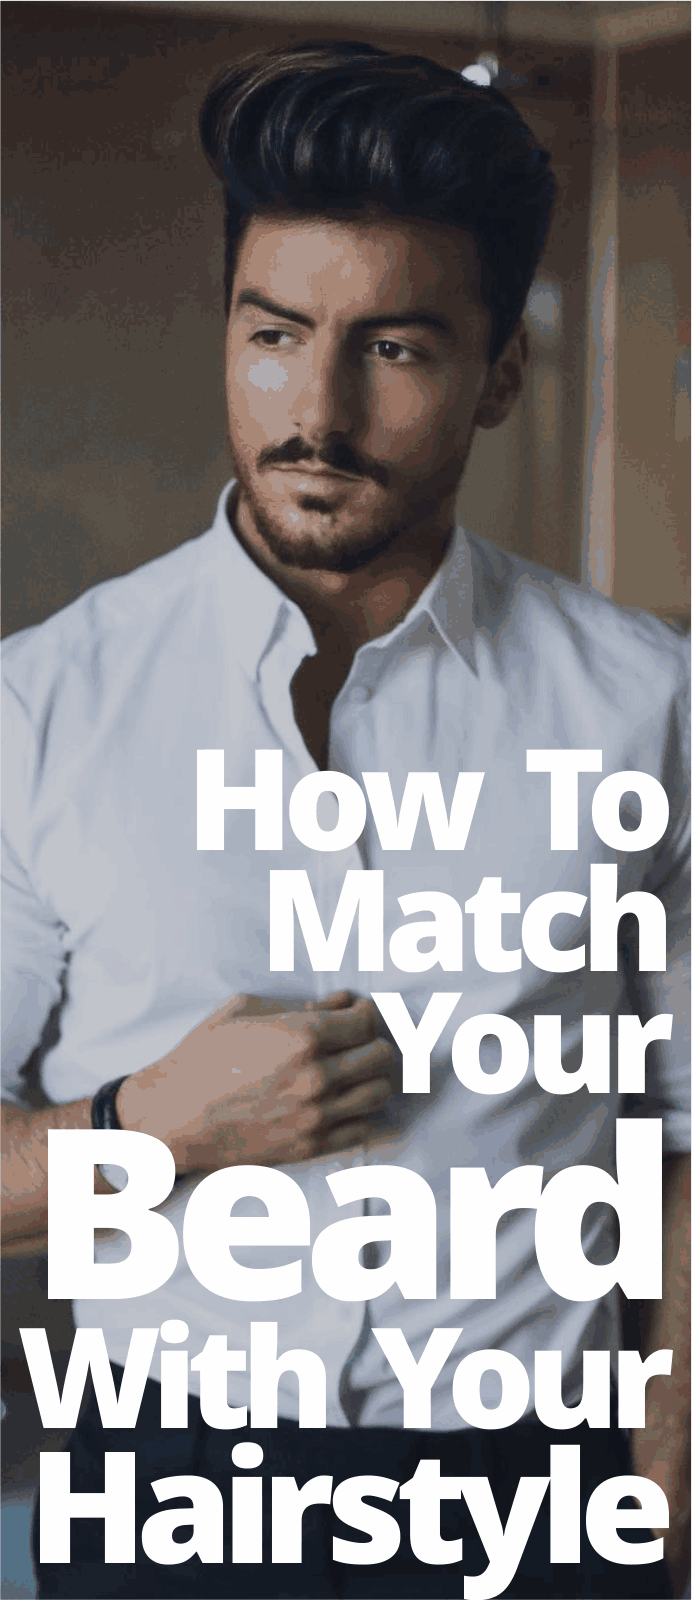 How To Match Your Beard With Your Hairstyle